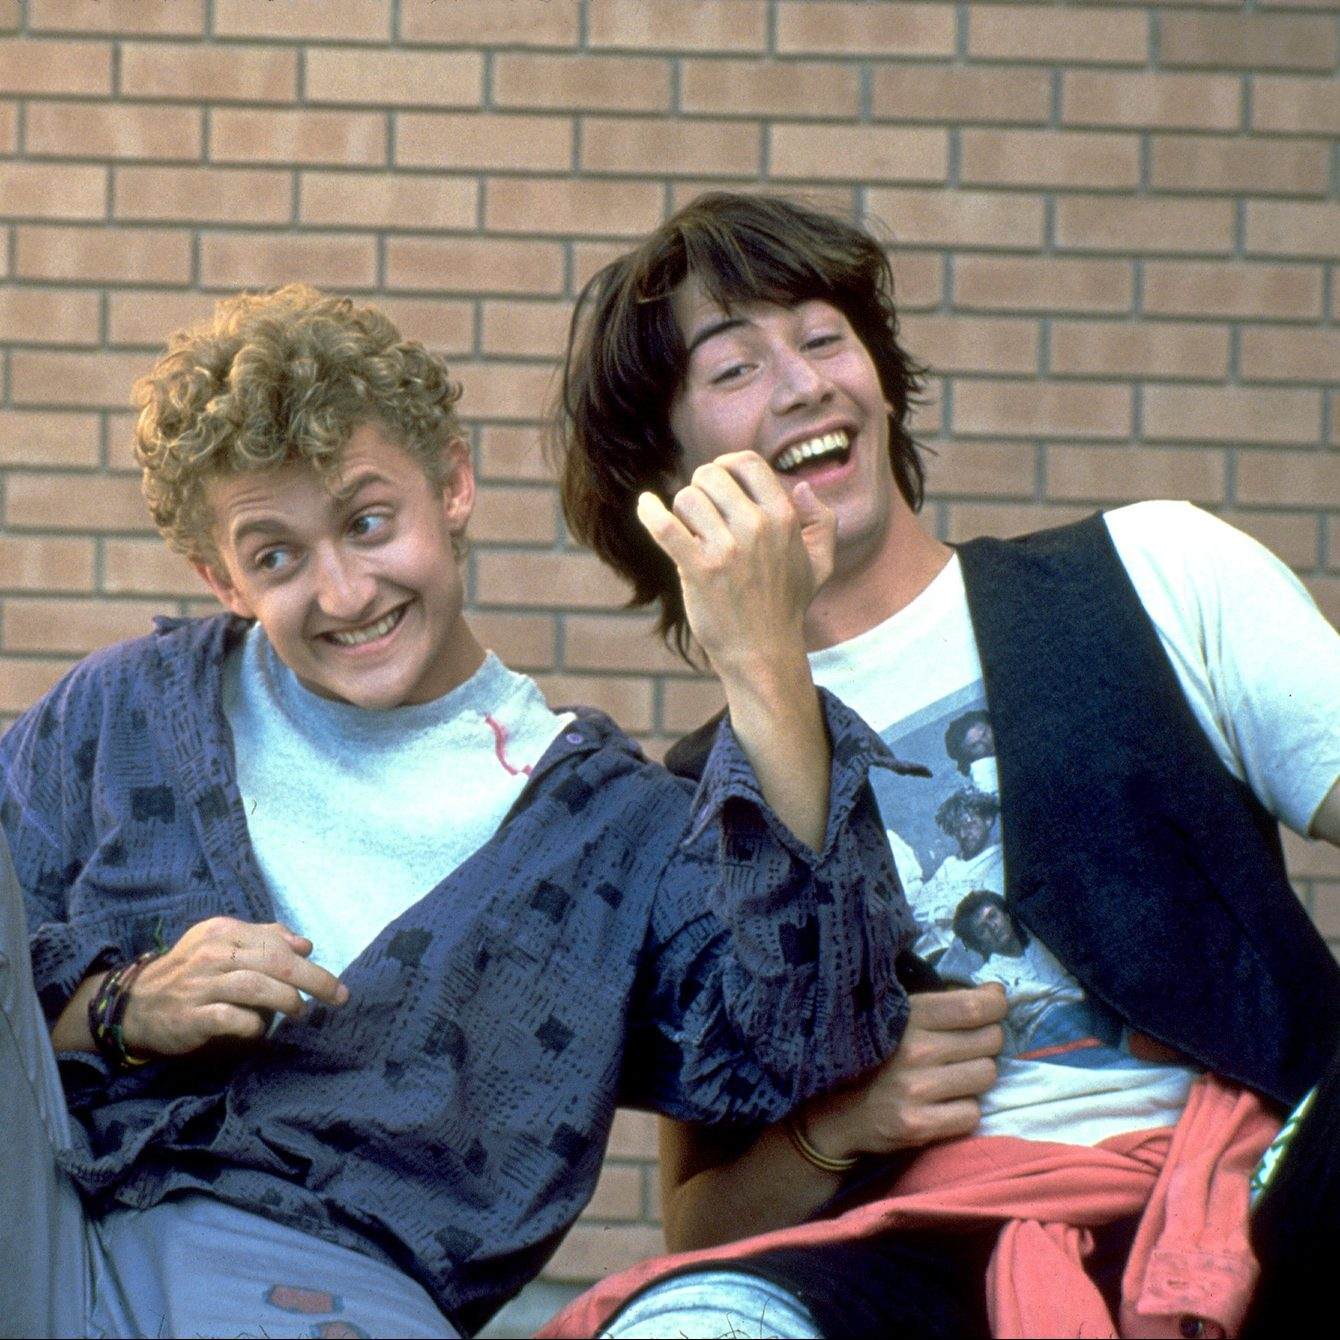 IDB L BILLTED DIMAS 0823 06 1 e1599572536104 25 Totally Non-Heinous Facts About Bill & Ted's Excellent Adventure!